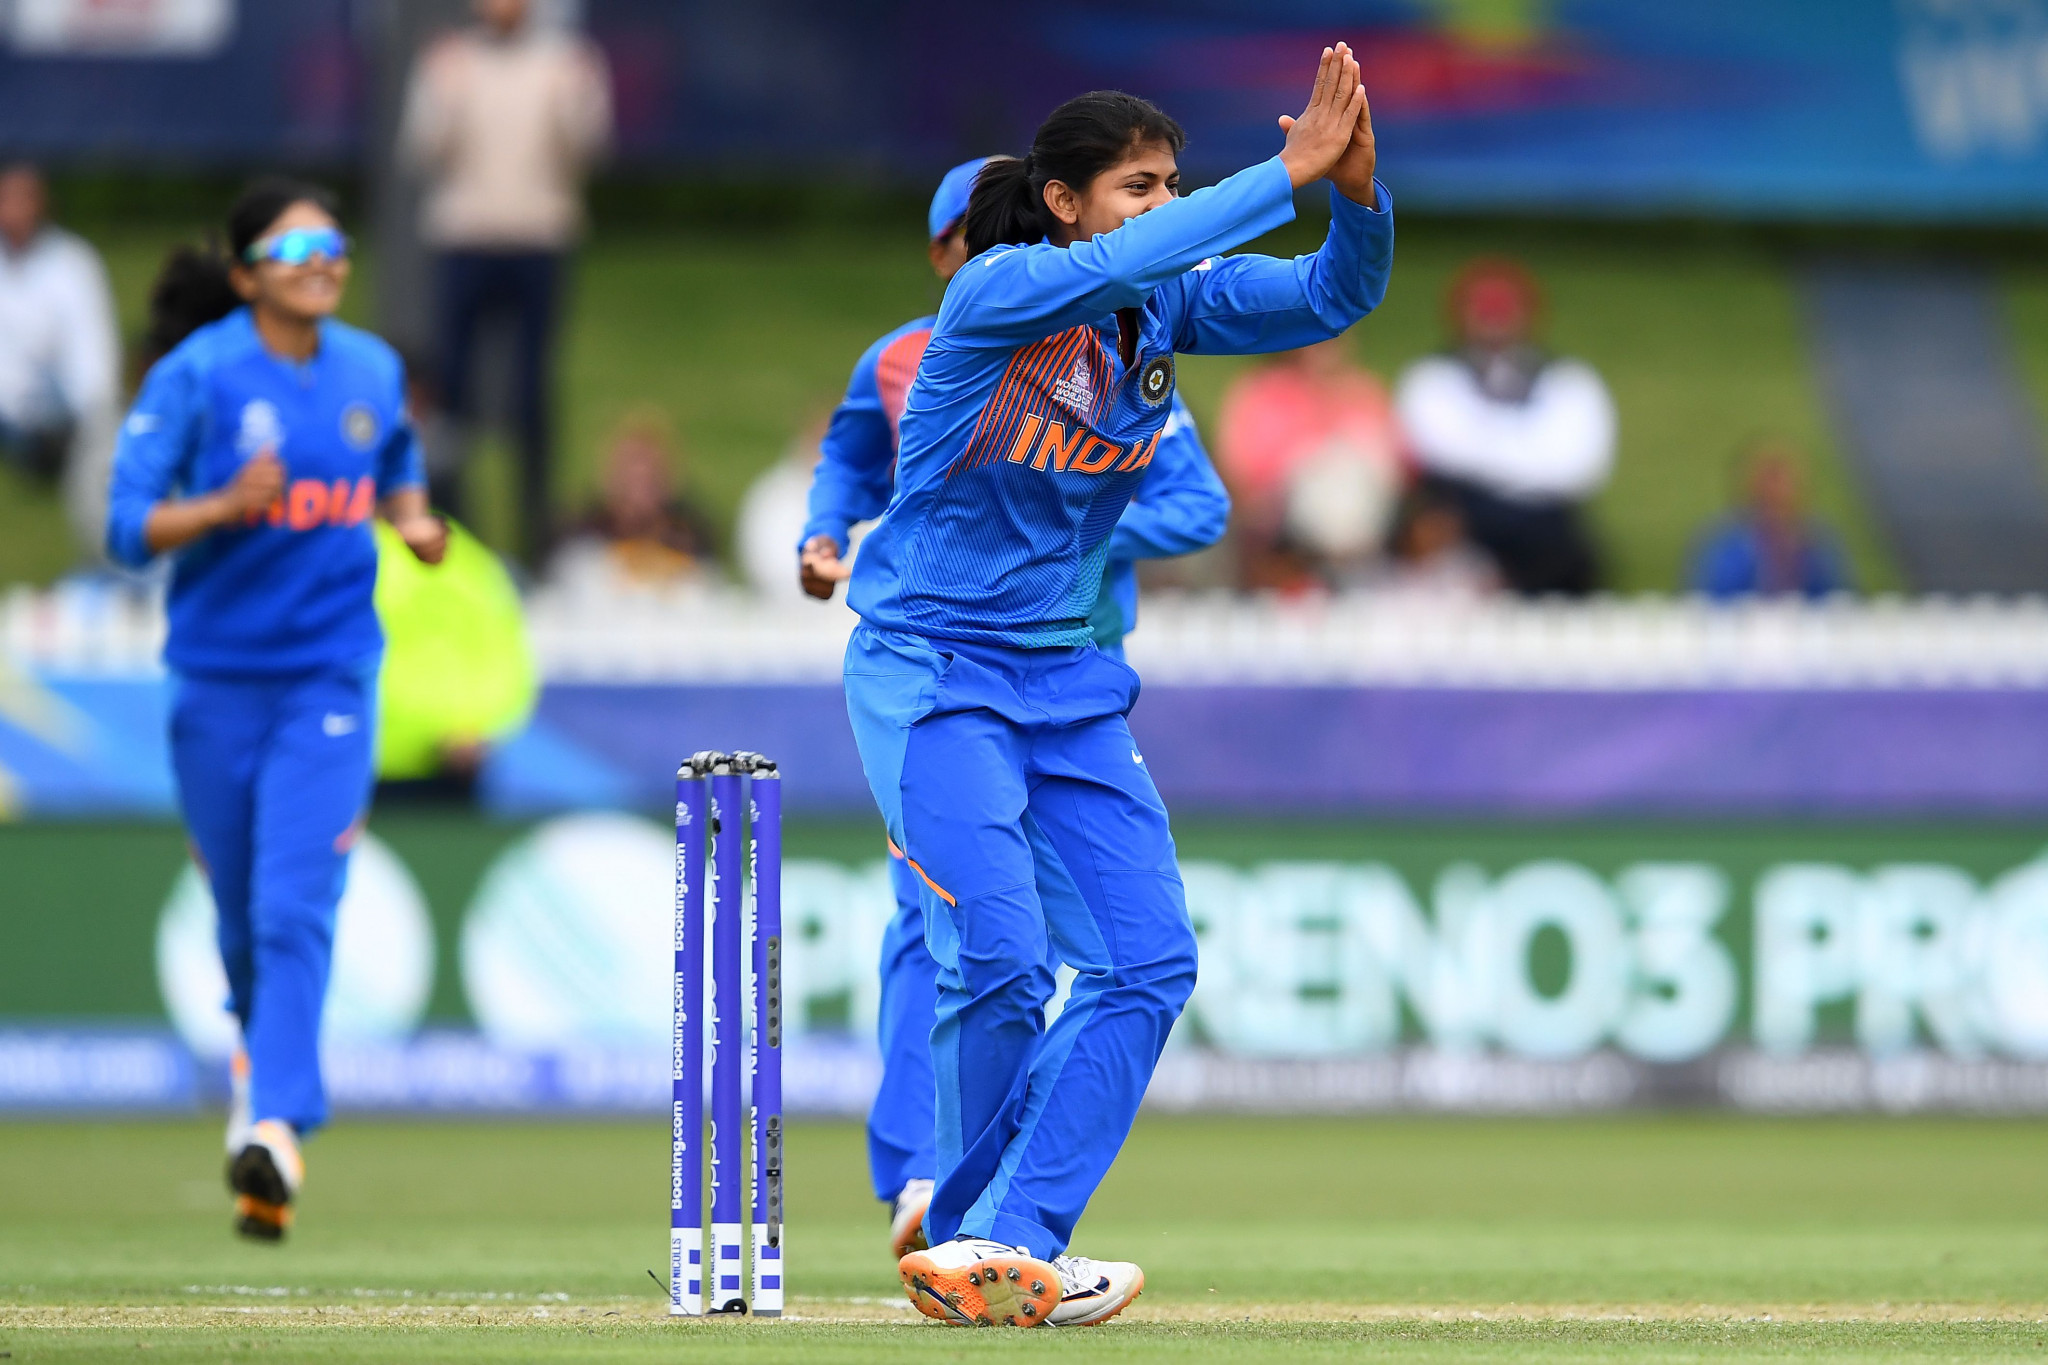 India beat New Zealand to qualify for Women's T20 World Cup semi-finals